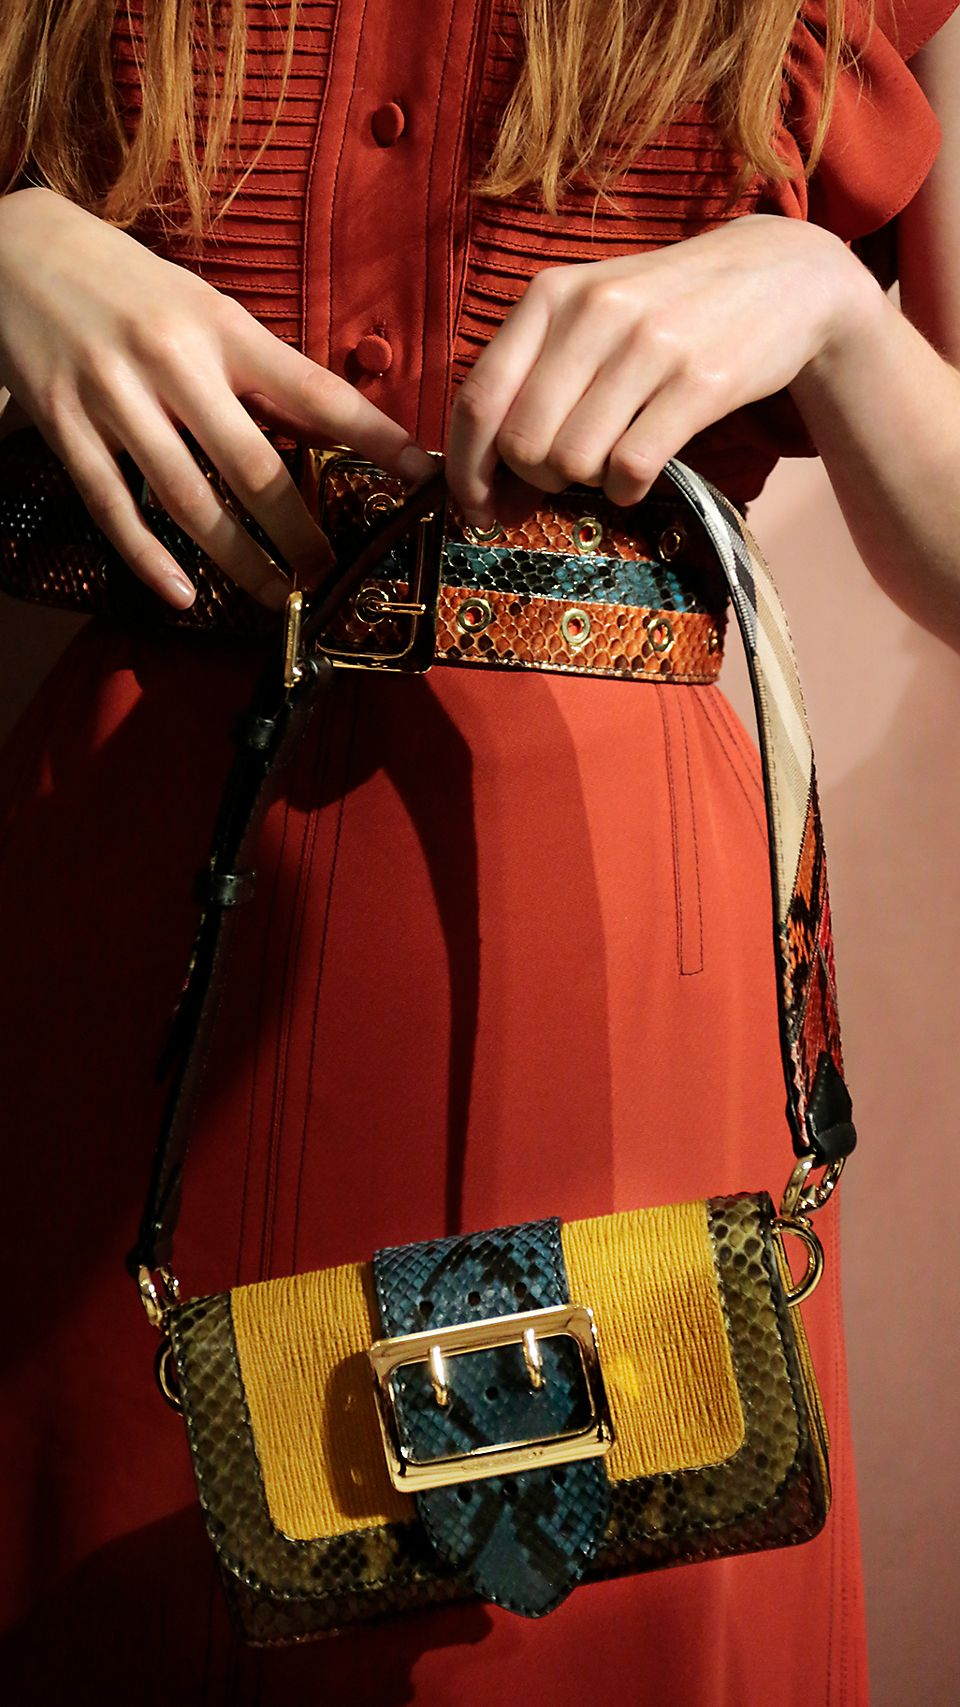 New in: The Patchwork  Our one-of-a-kind runway bag